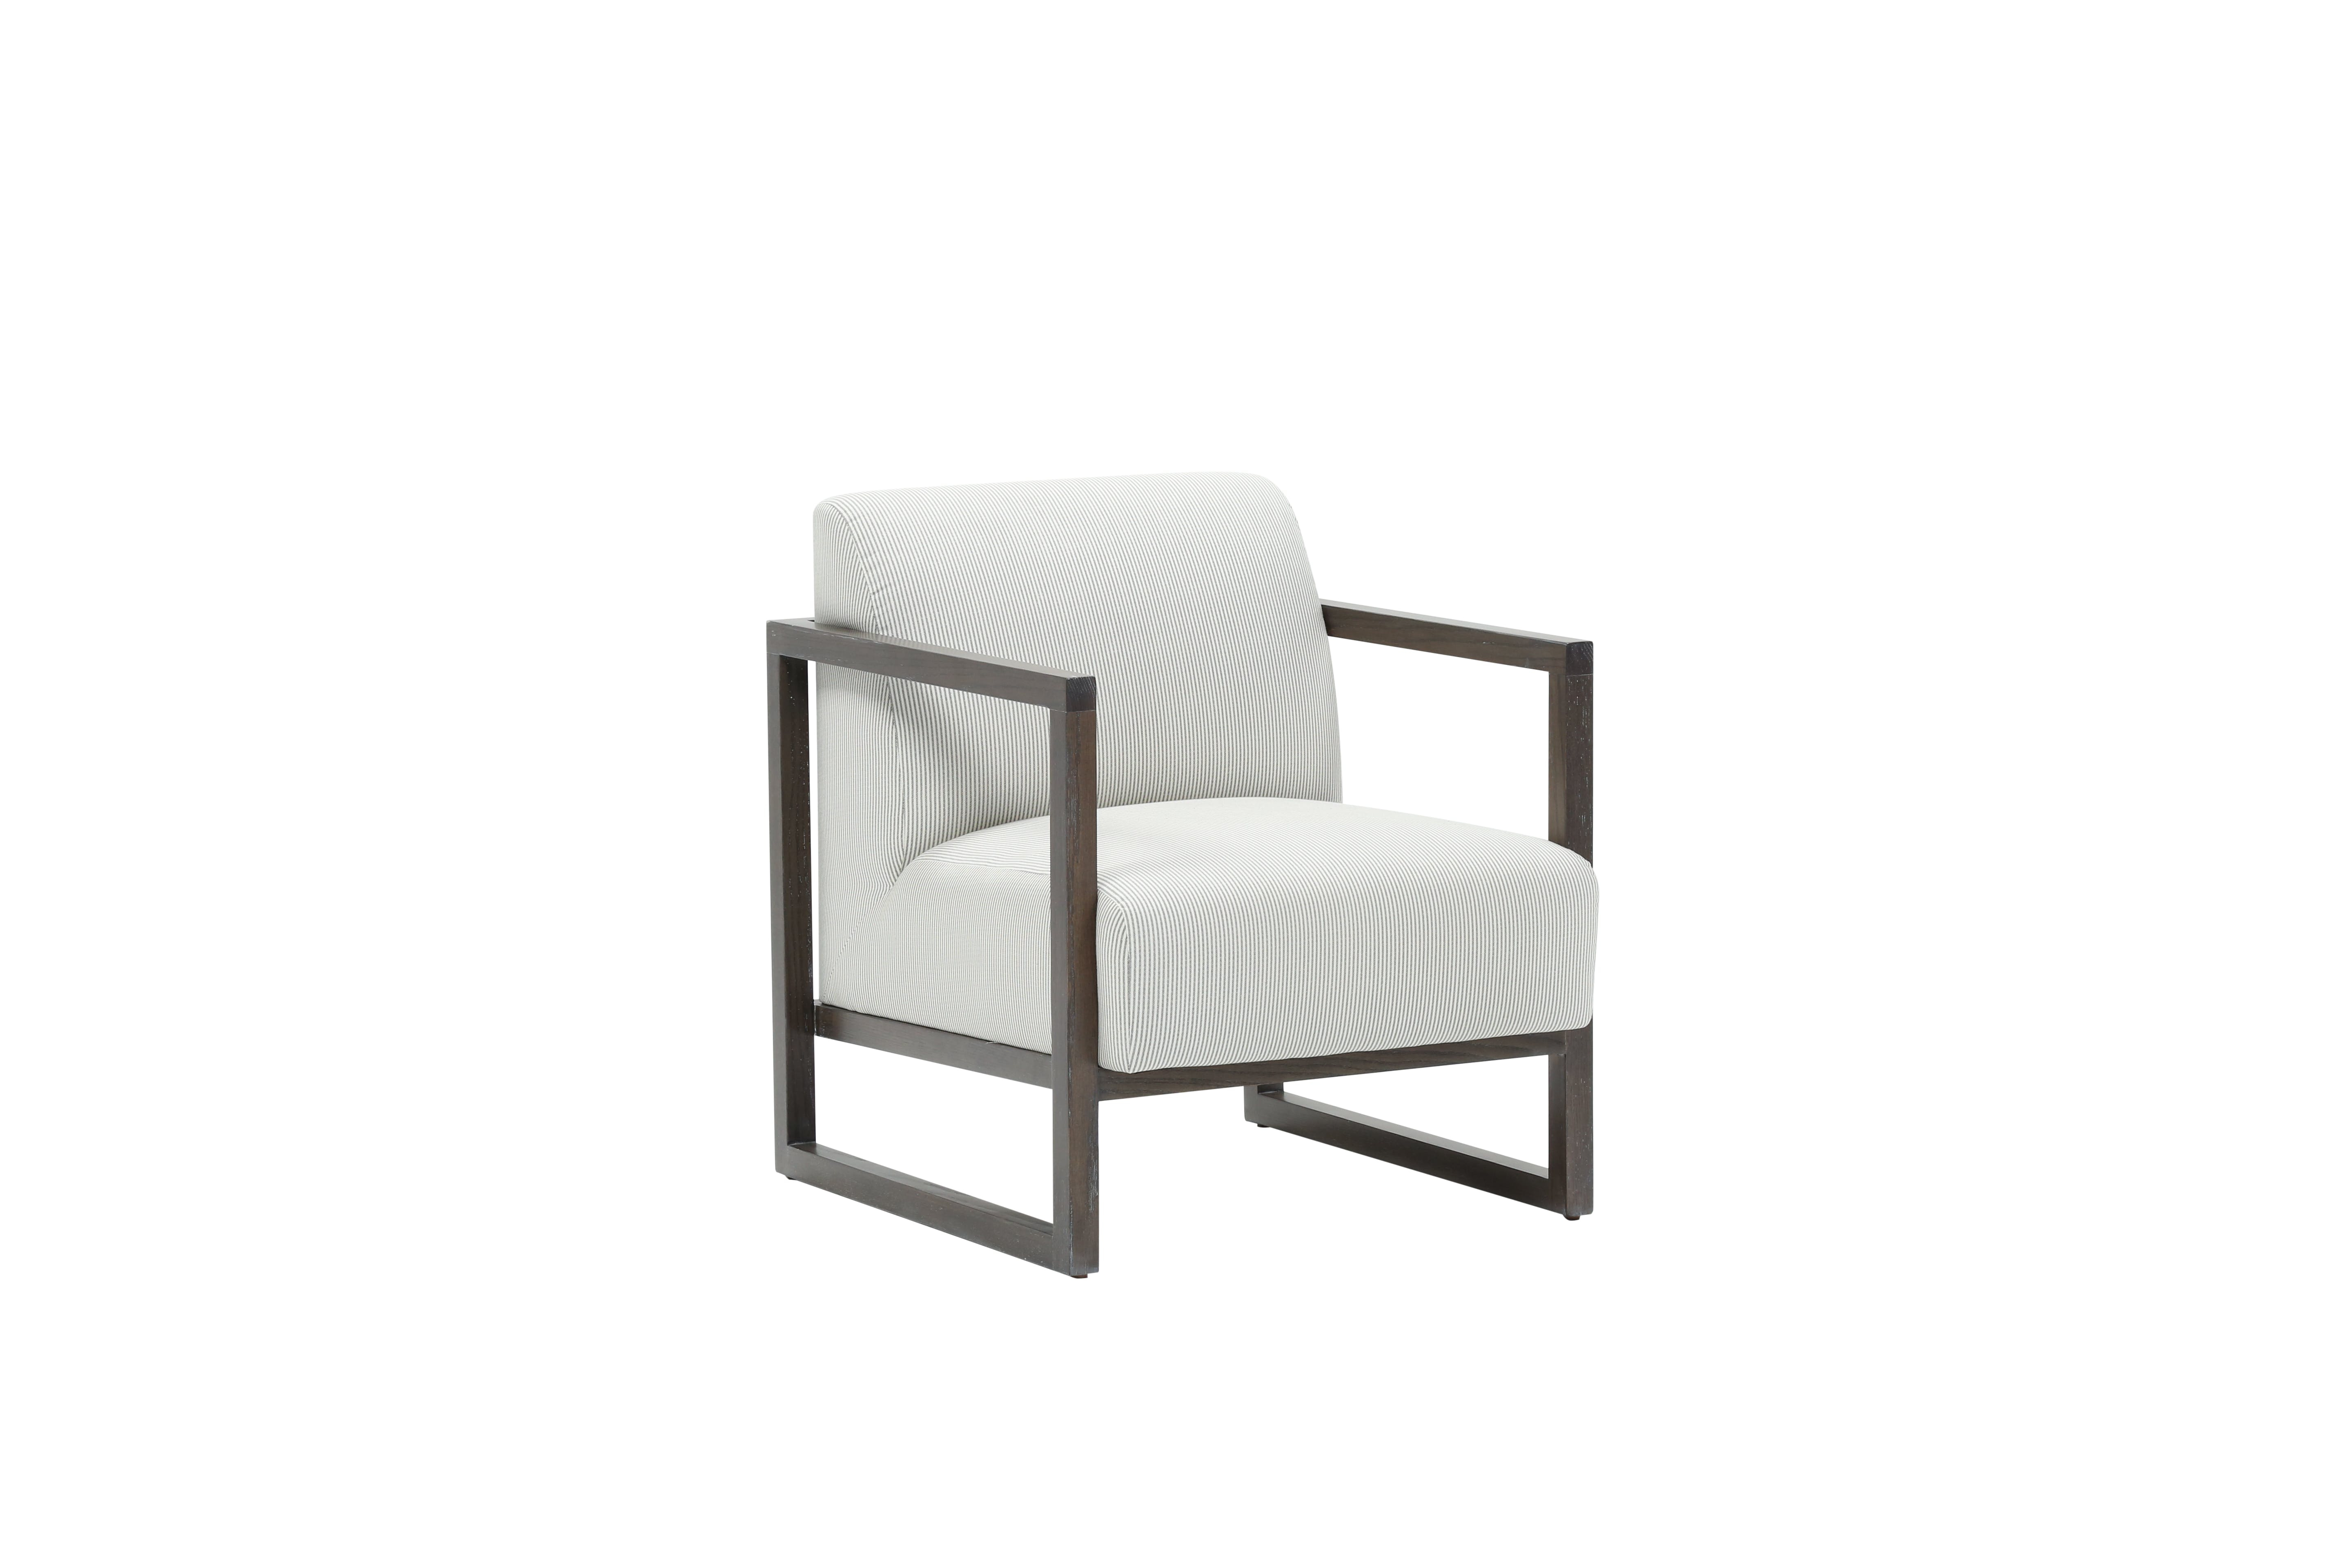 Nate Berkus Just Launched A Home Collection With Hubby Jeremiah Within Ames Arm Sofa Chairs By Nate Berkus And Jeremiah Brent (View 17 of 25)